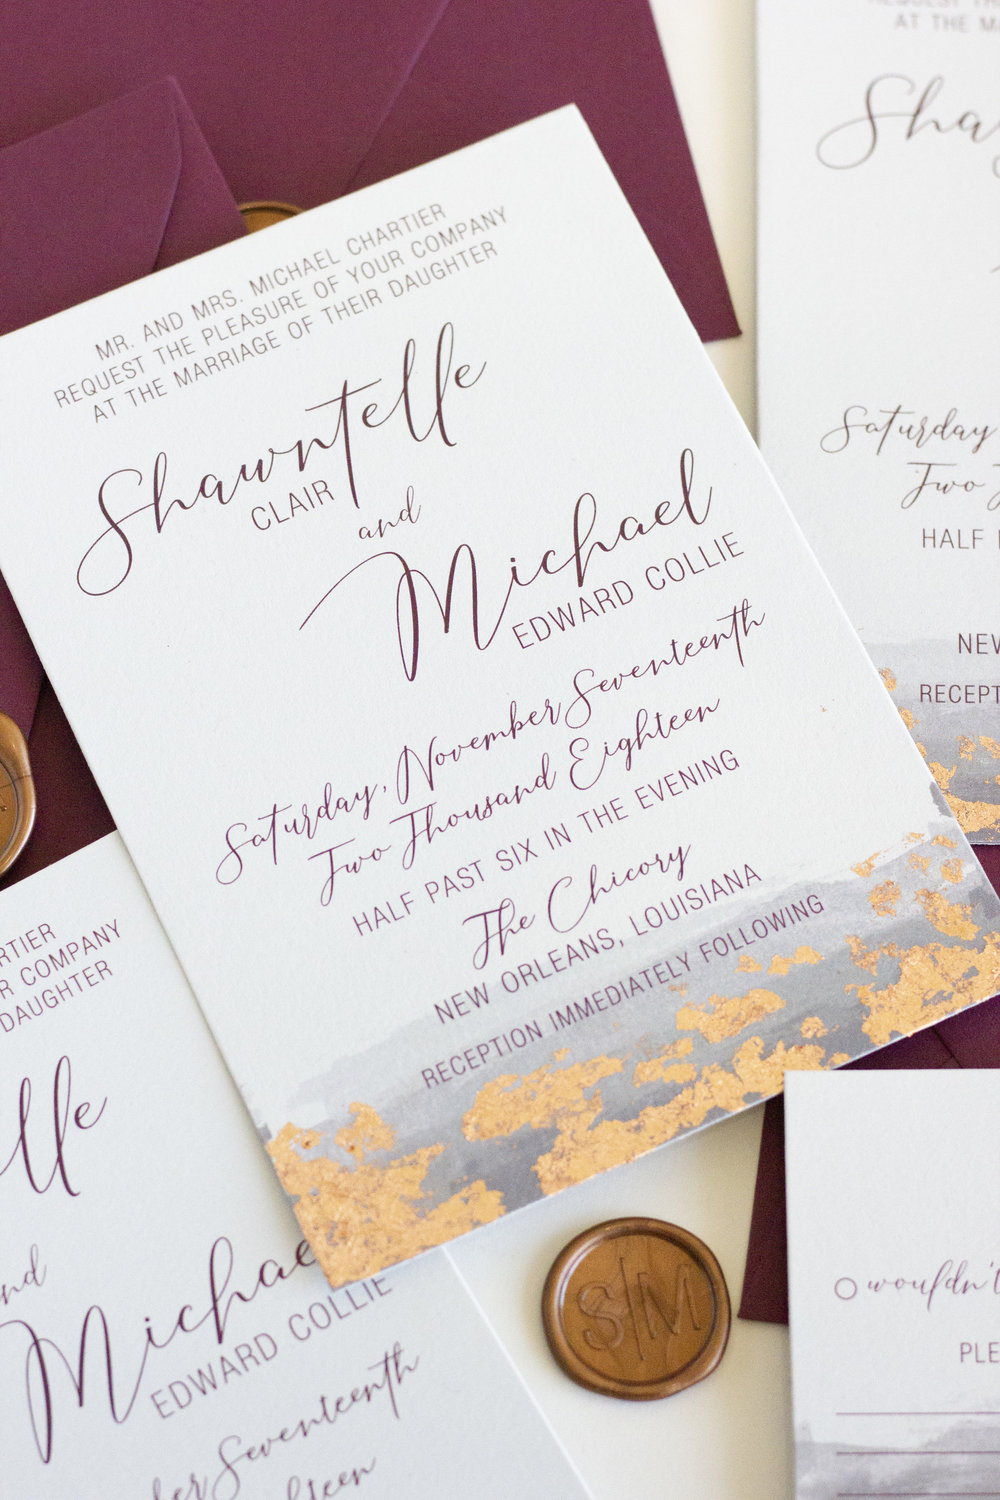 Hand Applied foil + flake - Elegant, luxe and oh-so chic.